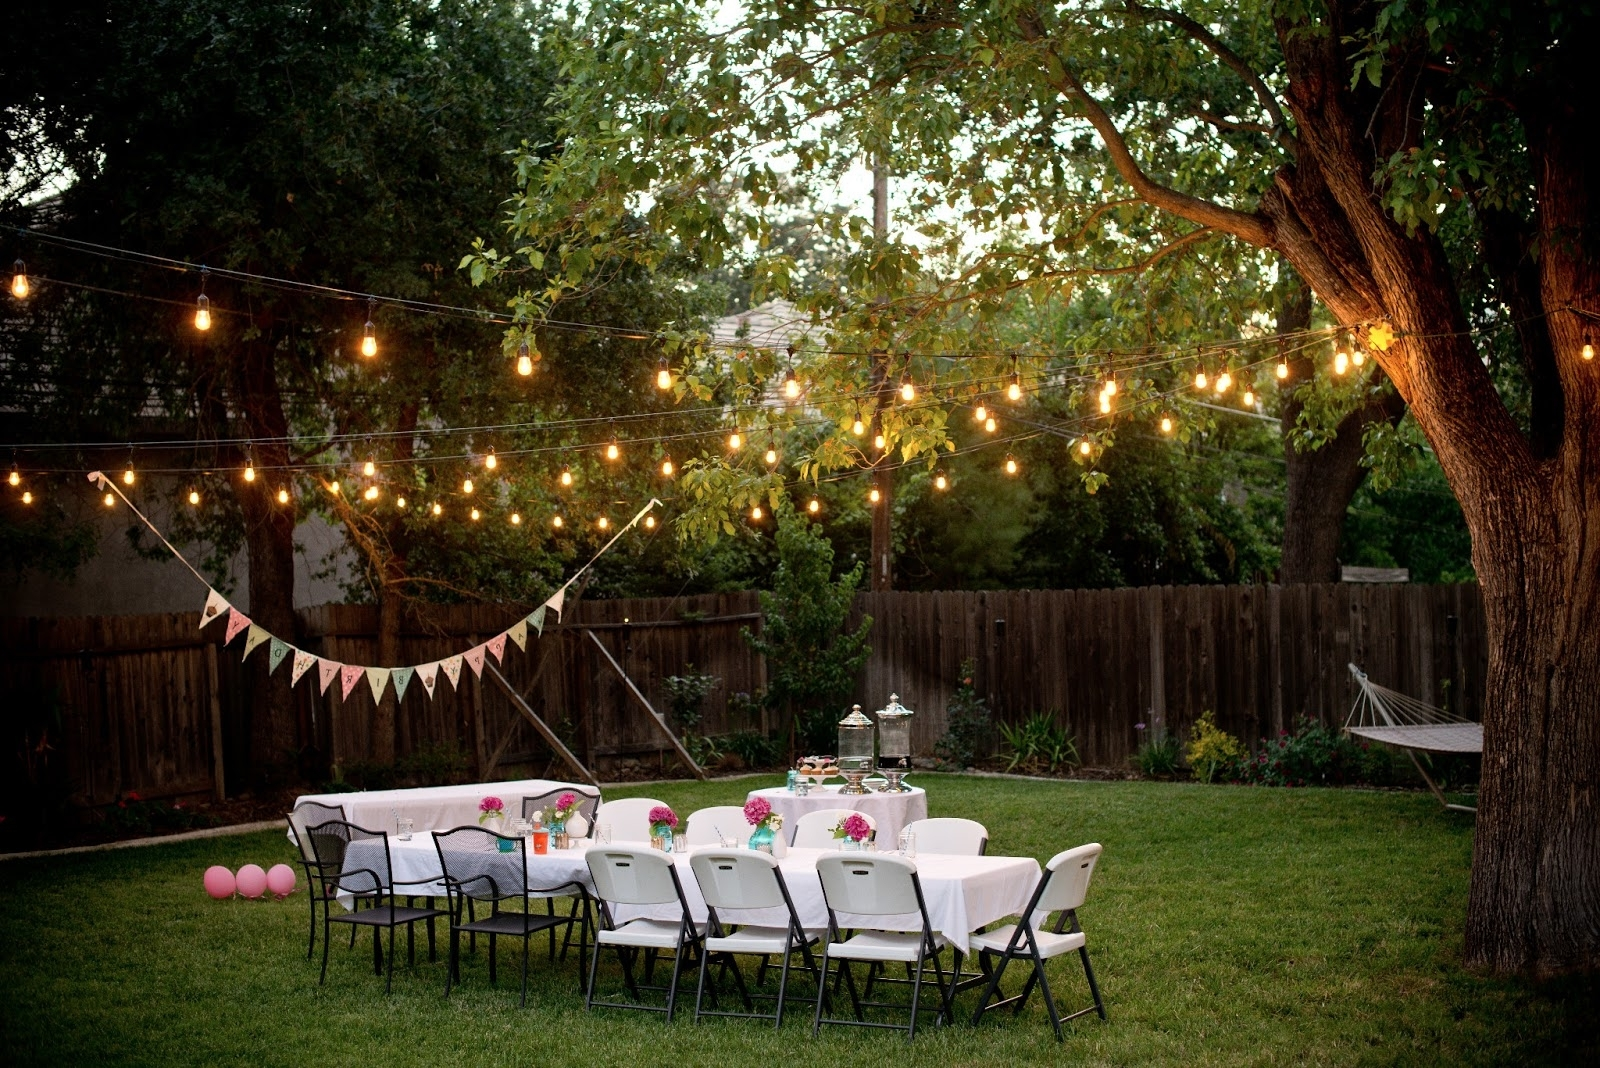 Outdoor Lanterns For Wedding Within Fashionable Cheap Outdoor Lights String Net Party Lighting Ideas For Weddings (View 13 of 20)